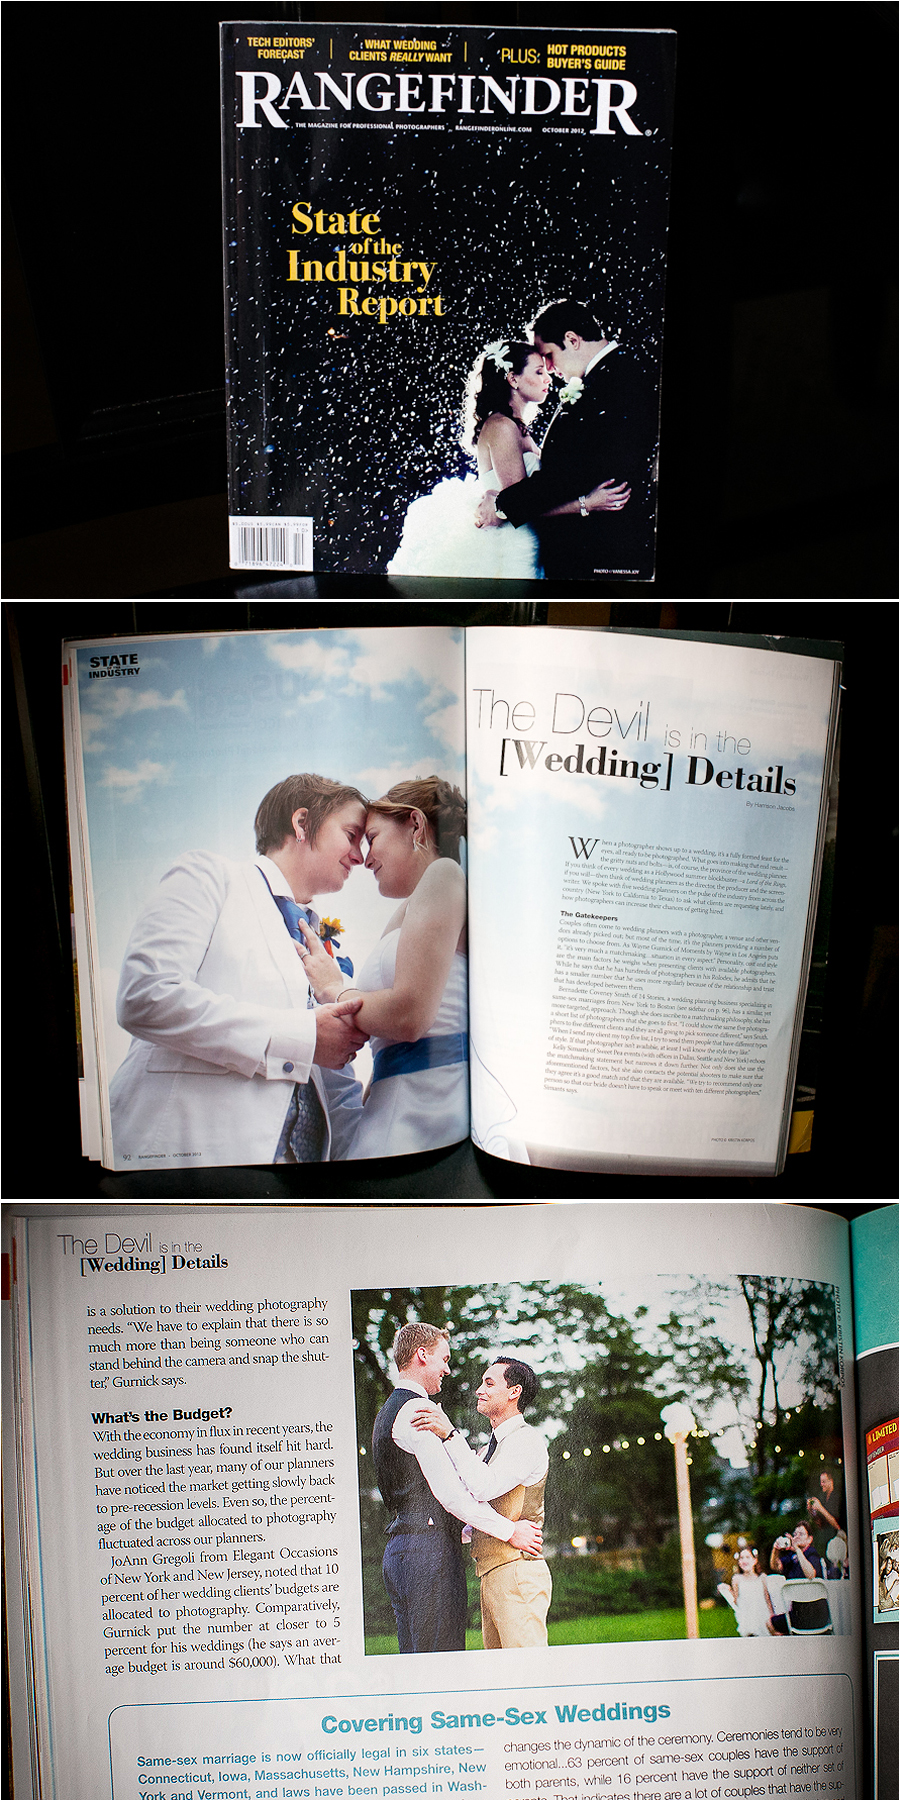 GayweddingphotographerRangefinder1 Gay Wedding Photos featured in Rangefinder Magazine